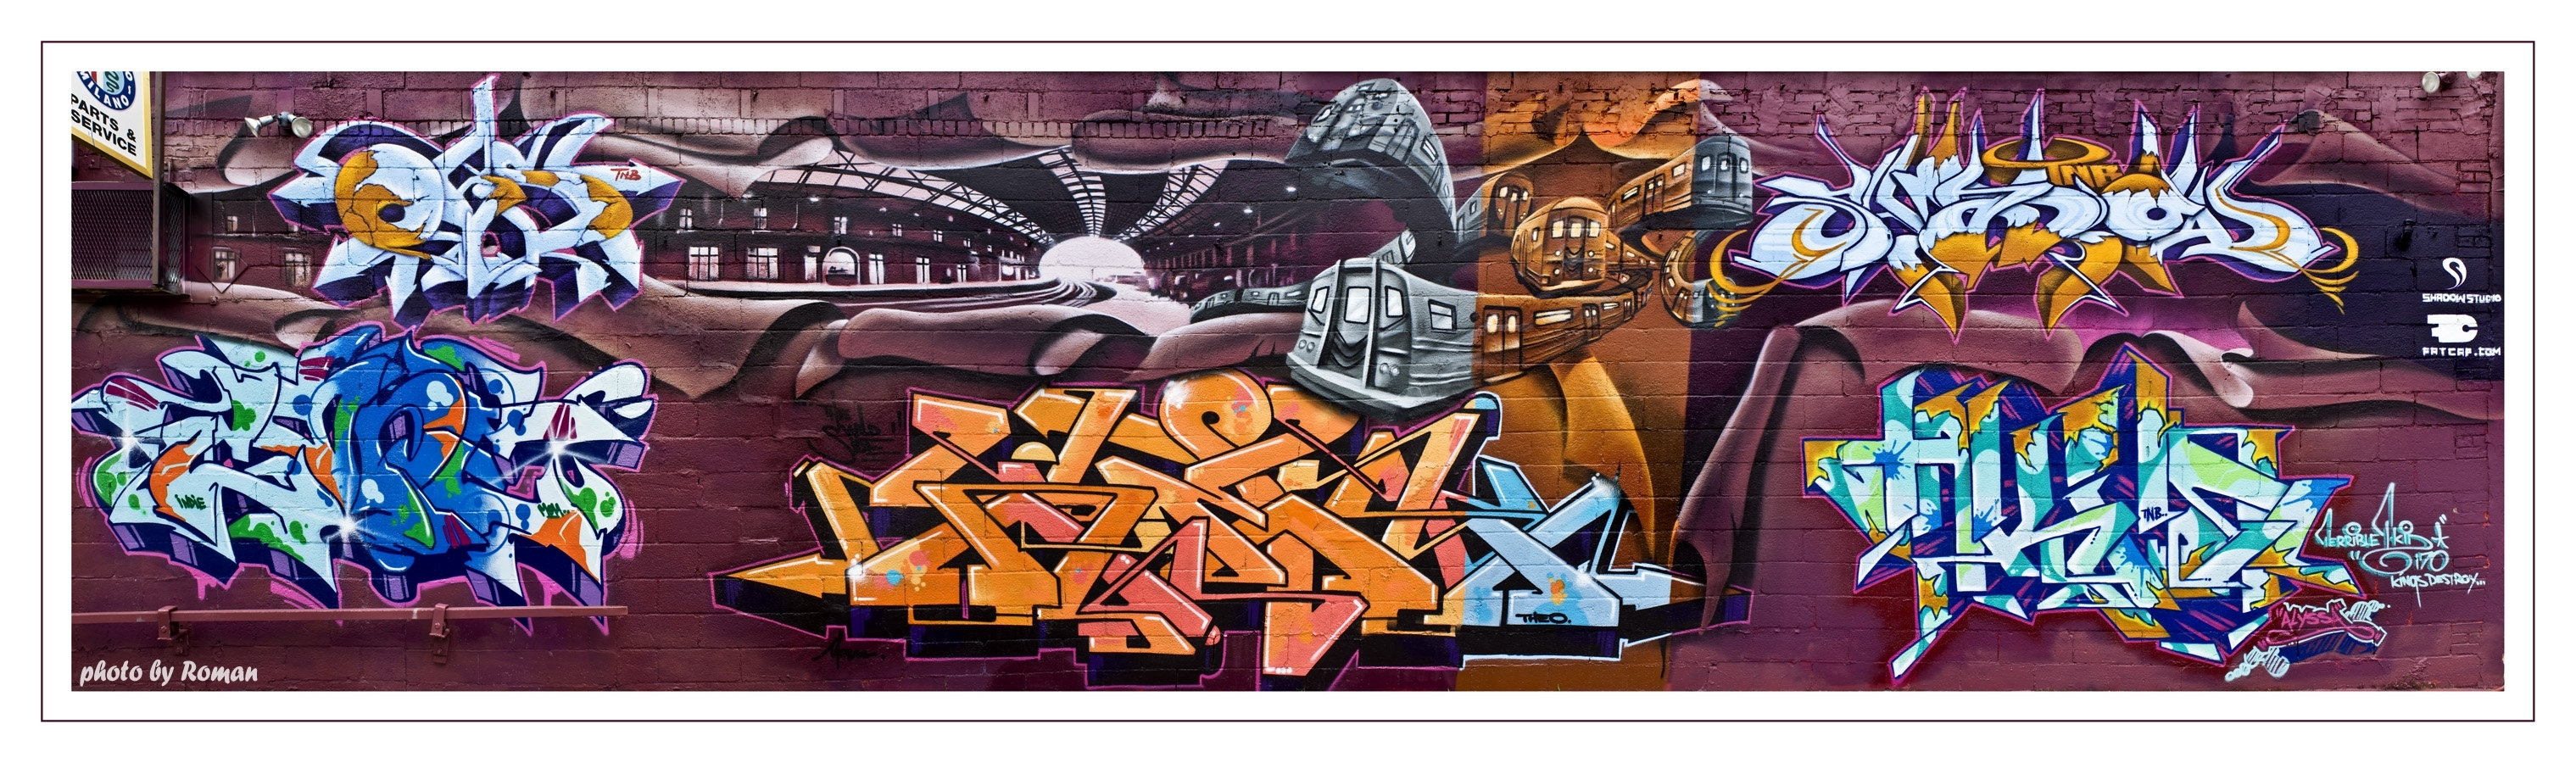 Nyc Wall #1 – Covering – Street Art And Graffiti | Fatcap Pertaining To Newest Nyc Wall Art (View 12 of 20)